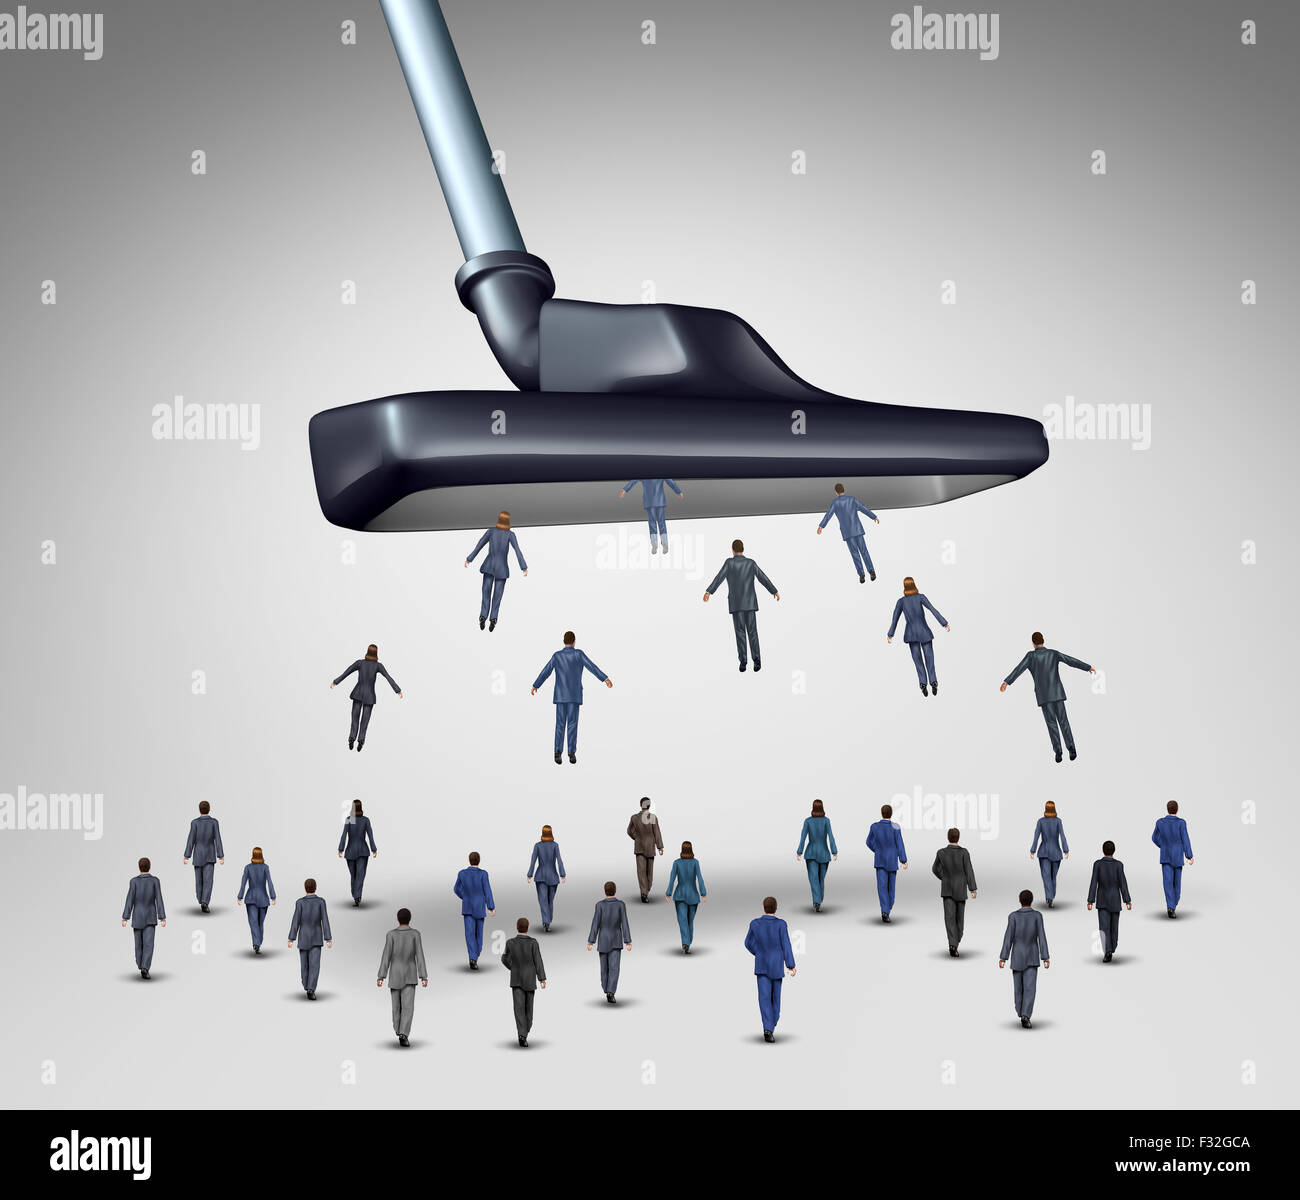 Employee management business concept as a giant vacuum cleaner sucking up businesspeople as businessmen and businesswomen - Stock Image